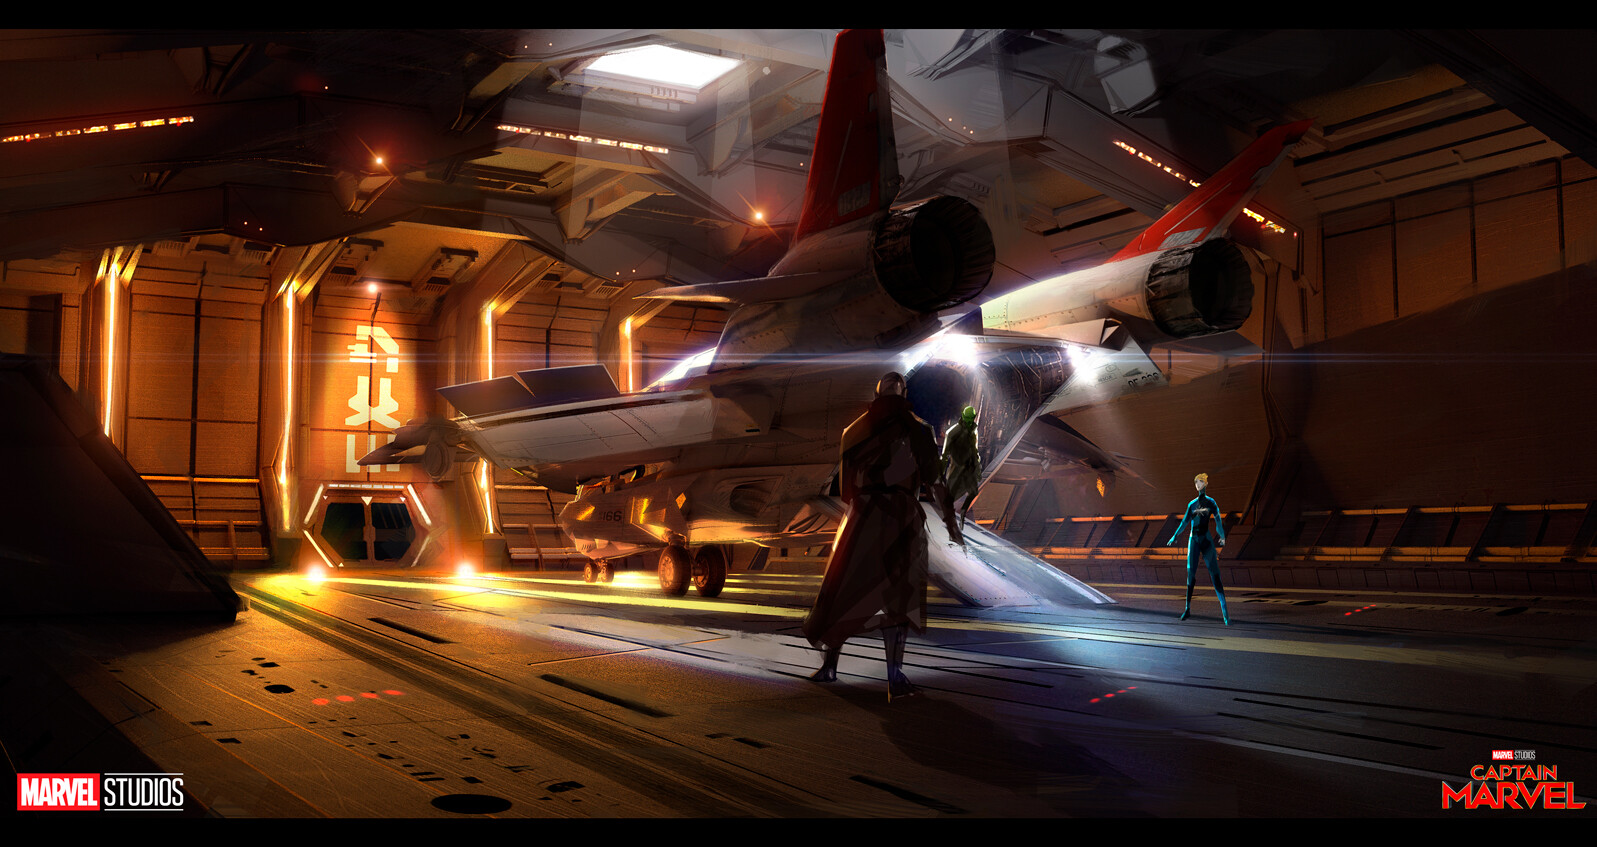 Pablo carpio captainmarvel marvelinterior keyframe3 pc